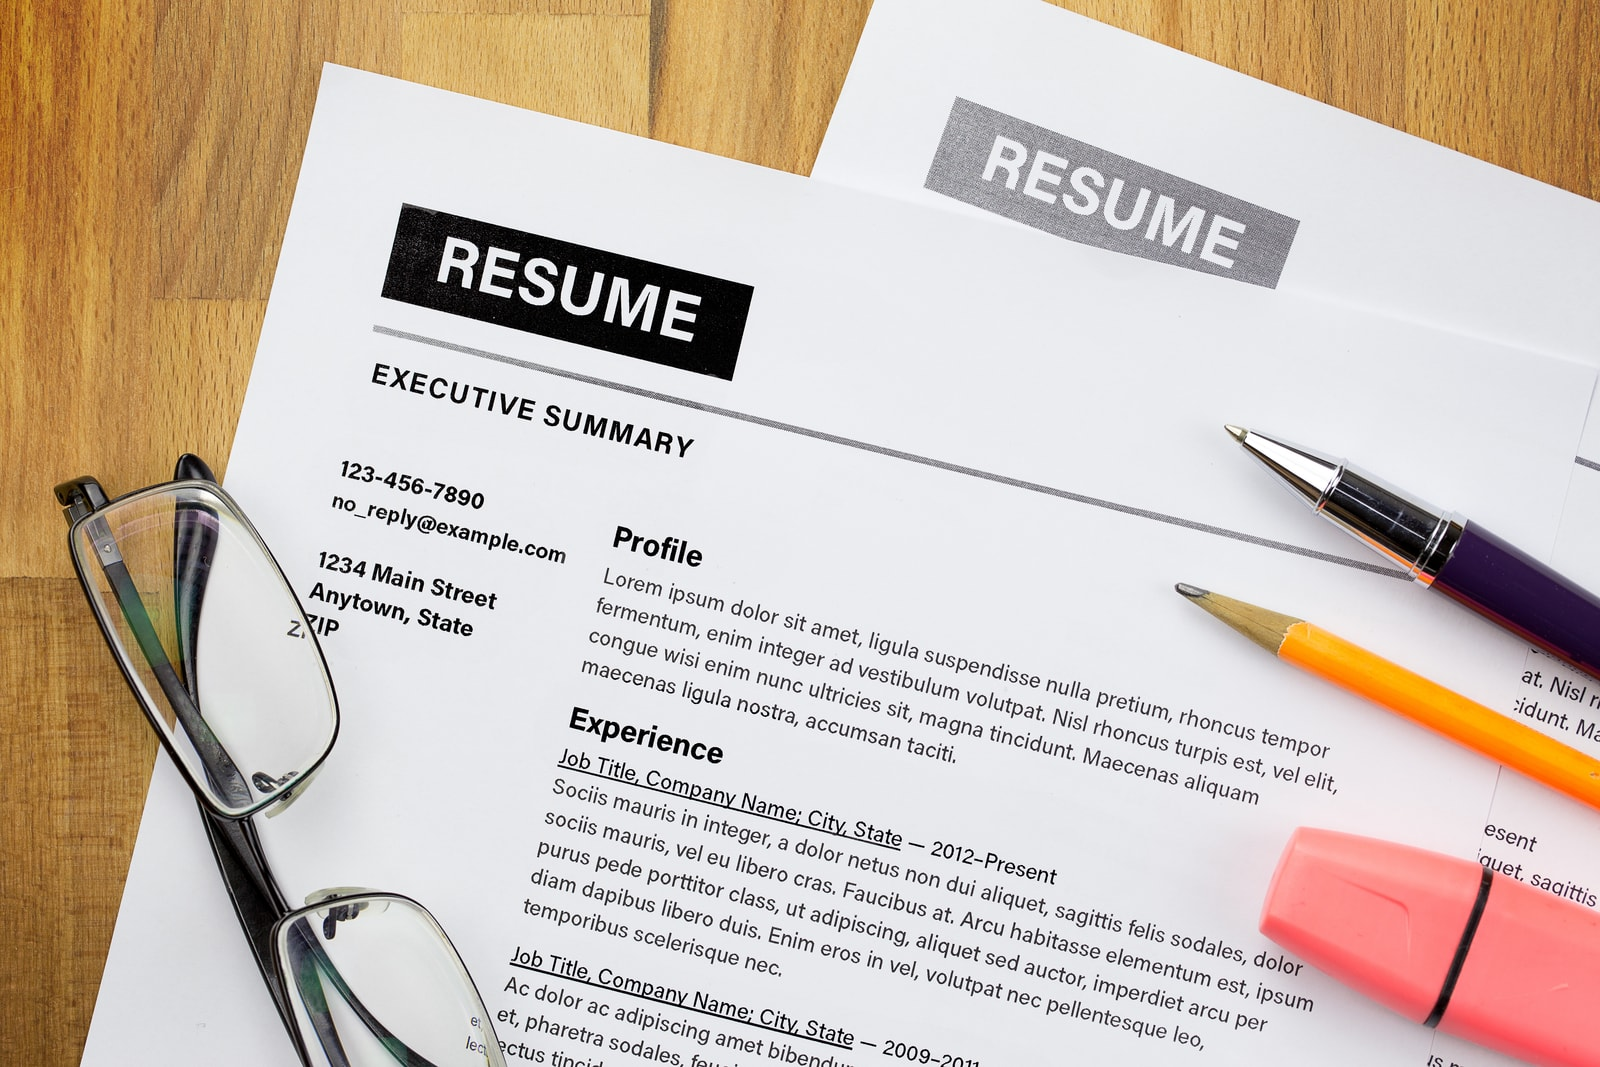 Advice For Job Seekers & Grads During Covid-19 Recession | Companies That Are Hiring Now